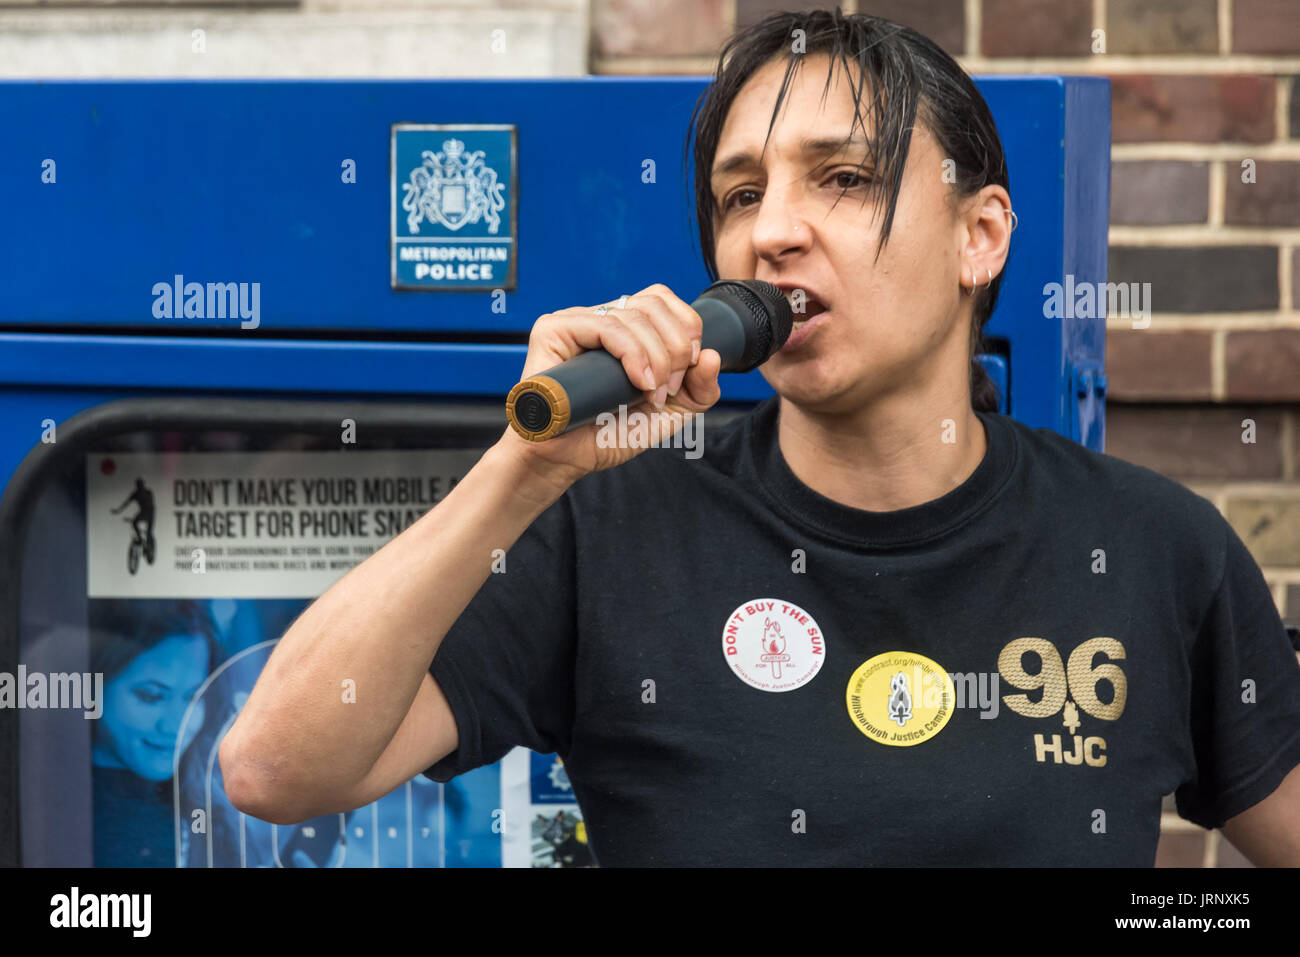 London, UK. 4th Aug, 2017. London, UK. 4th August 2017. Becky Shah from the Hillsborough Justice Campaign speaks at the rally at Tottenham Police Station remembering the death of Mark Duggan on the sixth anniversary of his killing by police, and also the police killing of other members of the Tottenham community - Cynthia Jarrett, Joy Gardner, Roger Sylvester, Mark Duggan and Jermaine Baker and the recent murders of Rashan Charles, Darren Cumberbatch and Edson Da Costa. Led by Stafford Scott, there was poetry, a minute of silence and speeches from family members as well as local activists, - Stock Image